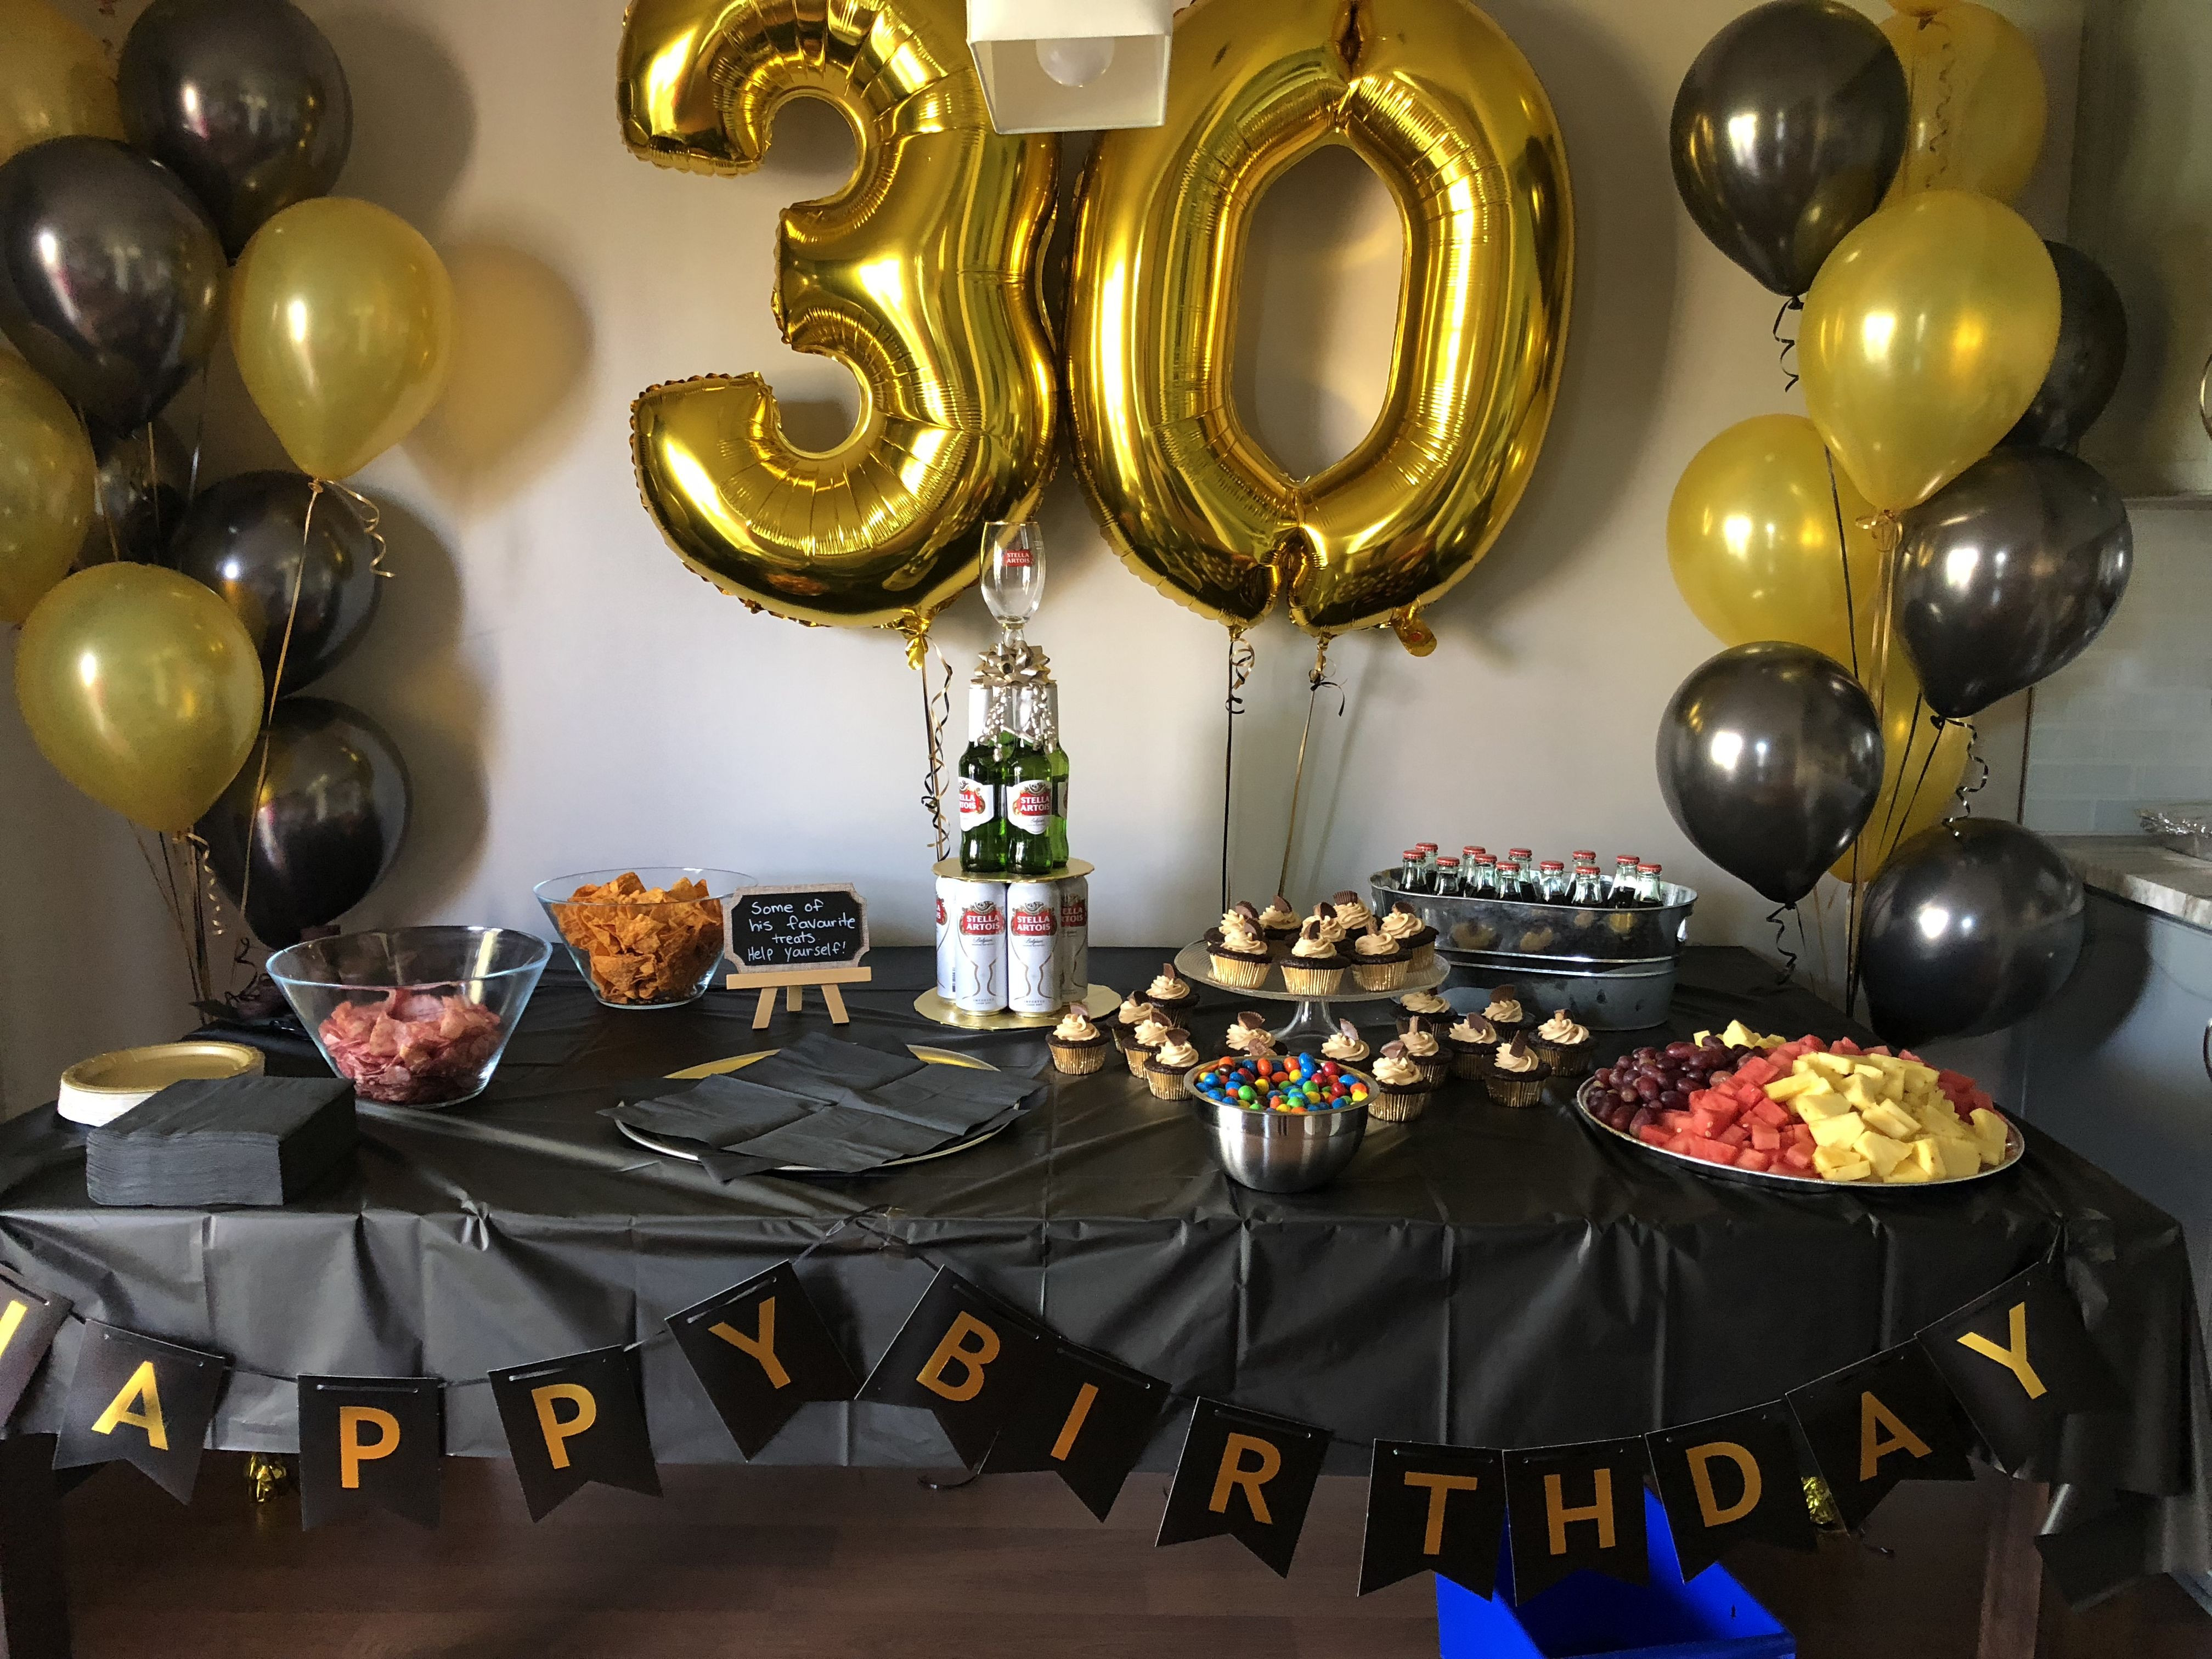 Best ideas about Birthday Decorations For Him . Save or Pin 30th Birthday decor for him Now.